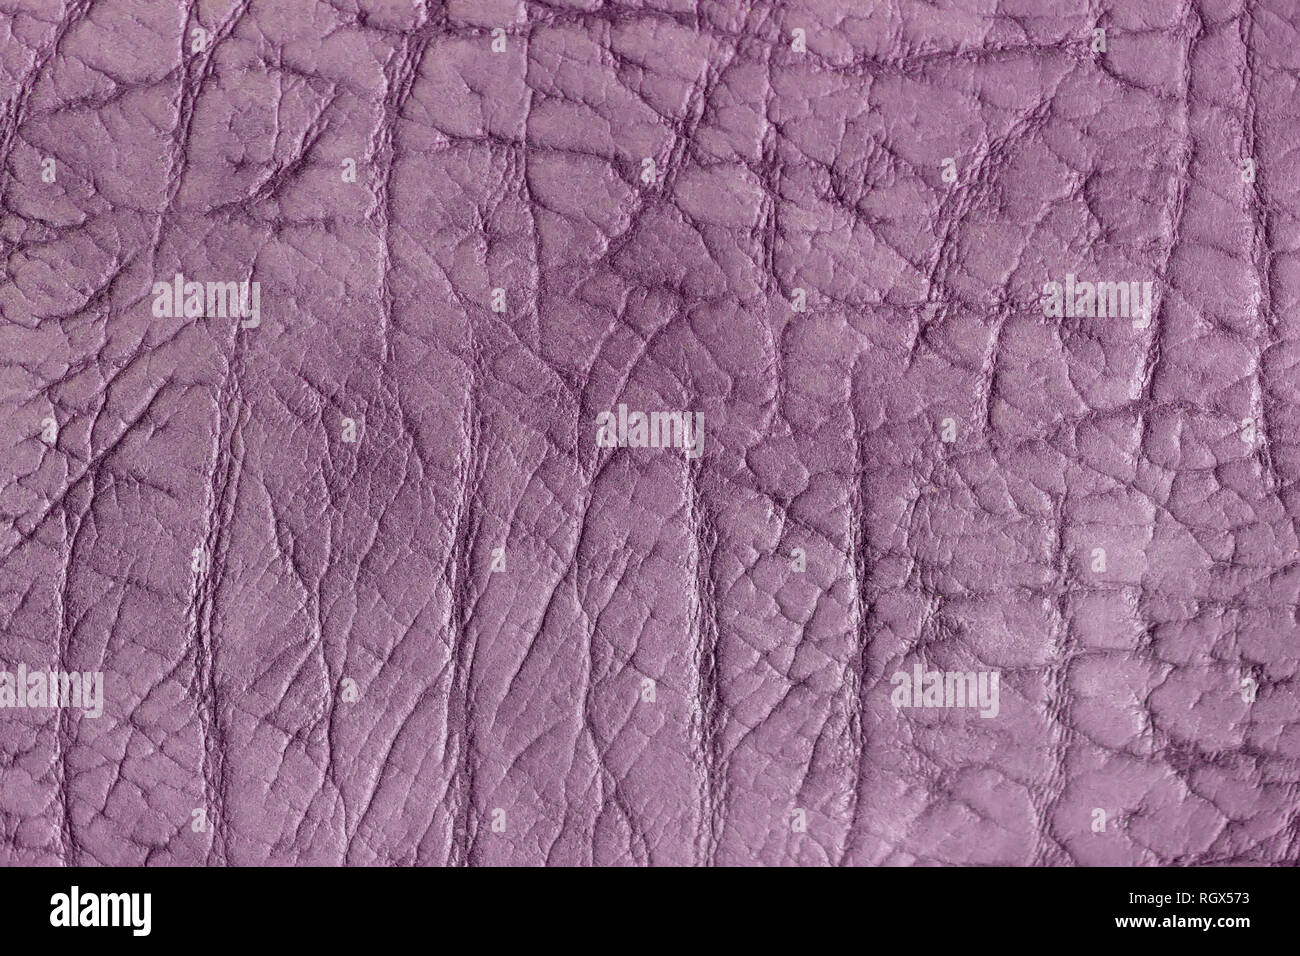 Texture of genuine leather close-up, surface close-up with wrinkles and cracks, violet color print, trendy background - Stock Image